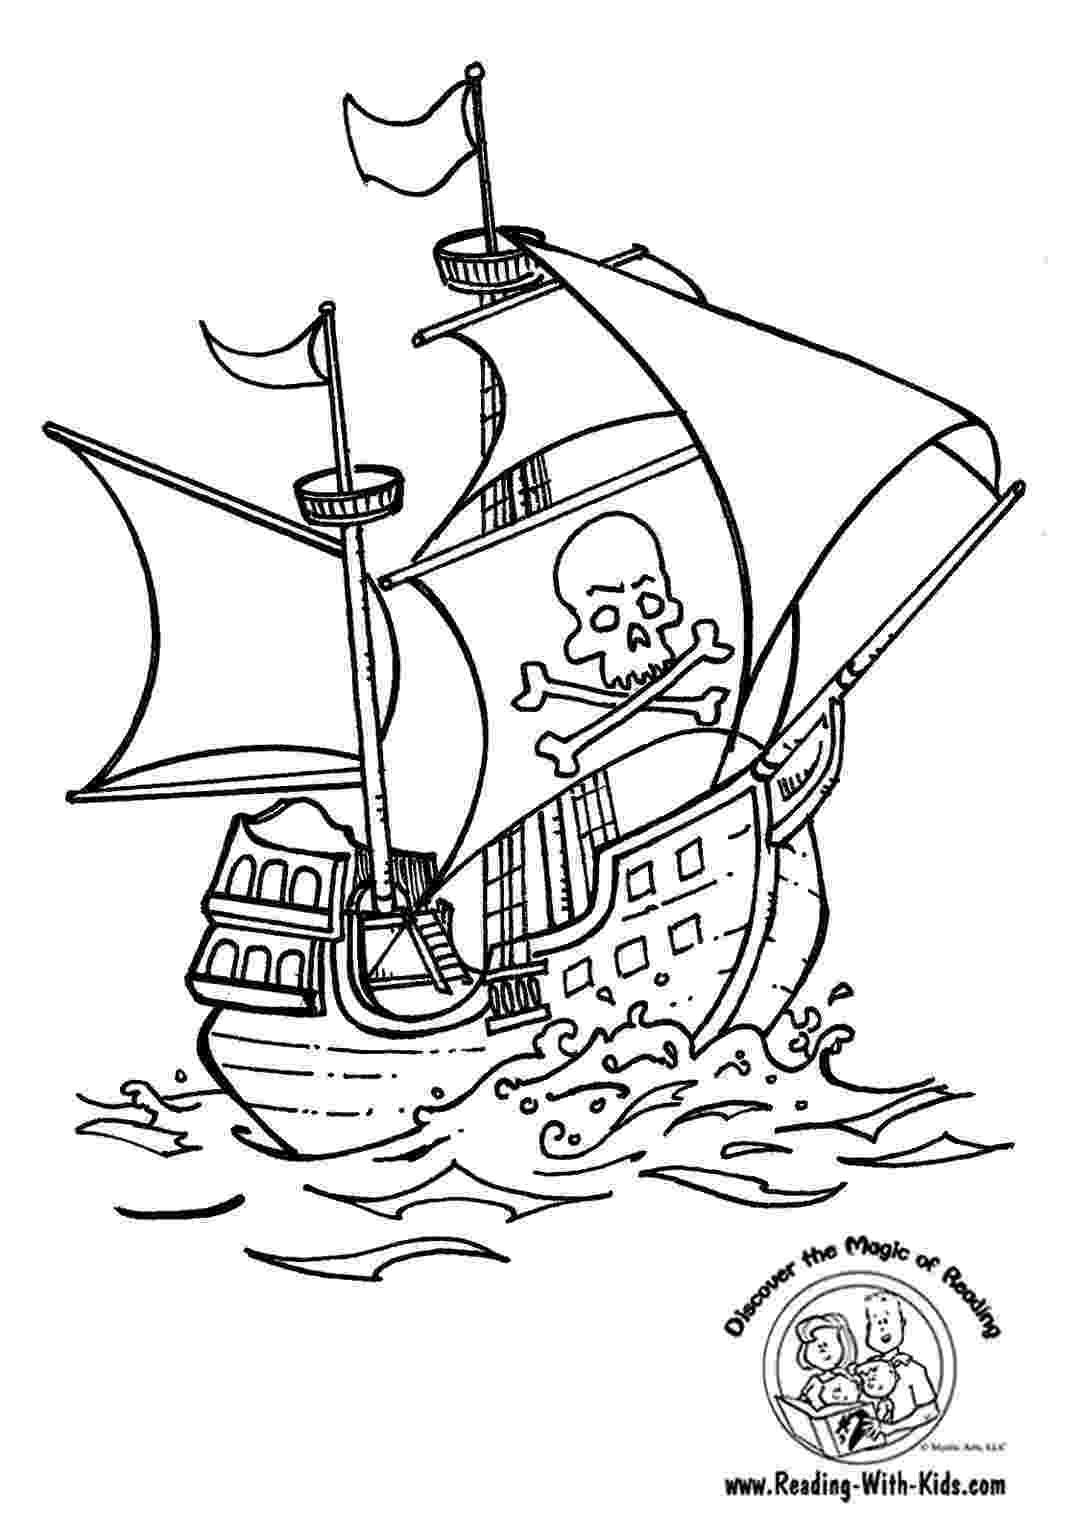 pirate coloring pages for kids printable 79 best piraten kleurplaten images on pinterest printable for coloring kids pages pirate